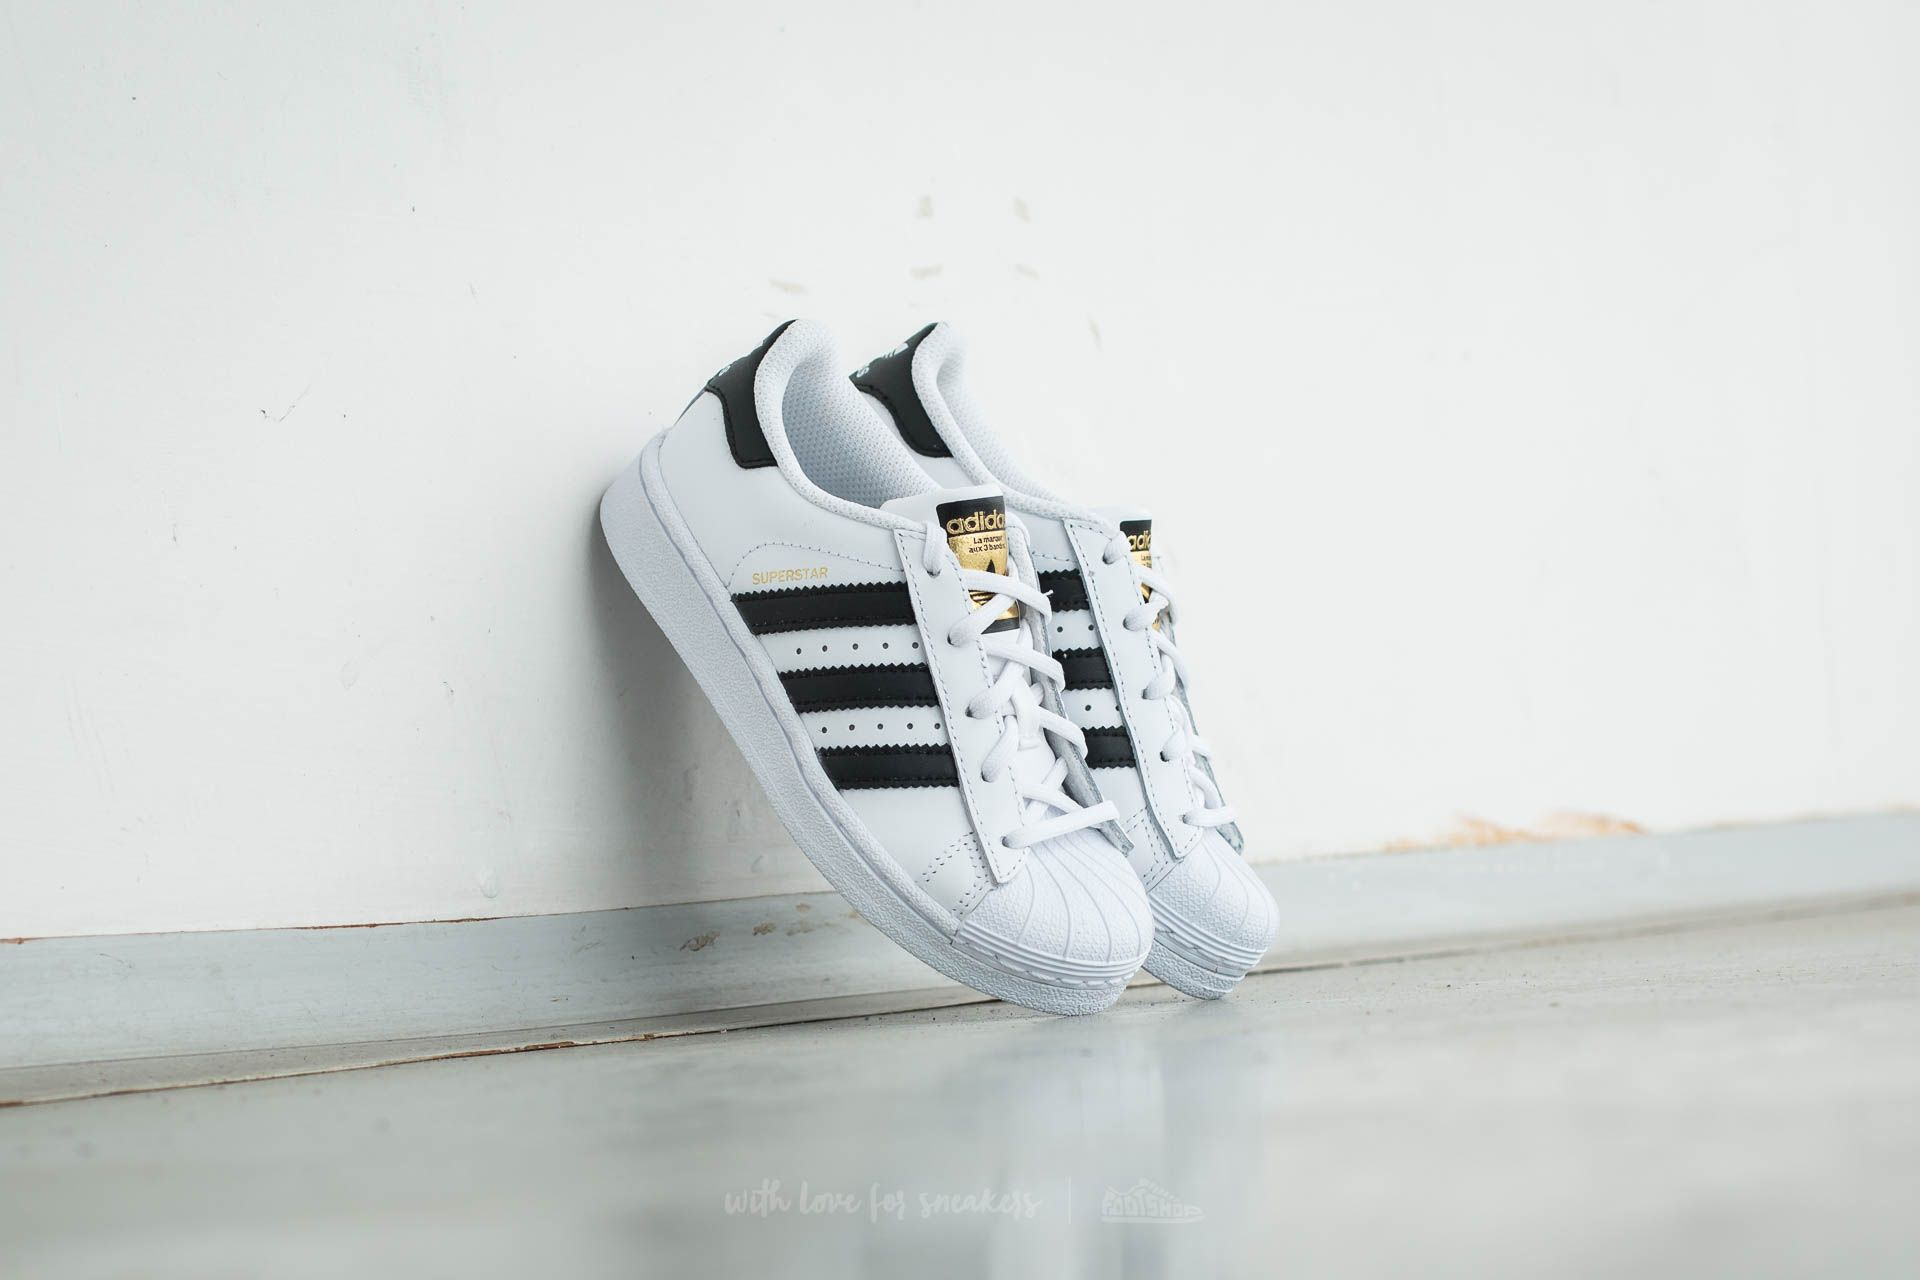 adidas Superstar Foundation C Ftw White/ Core Black/ Ftw White - 11930